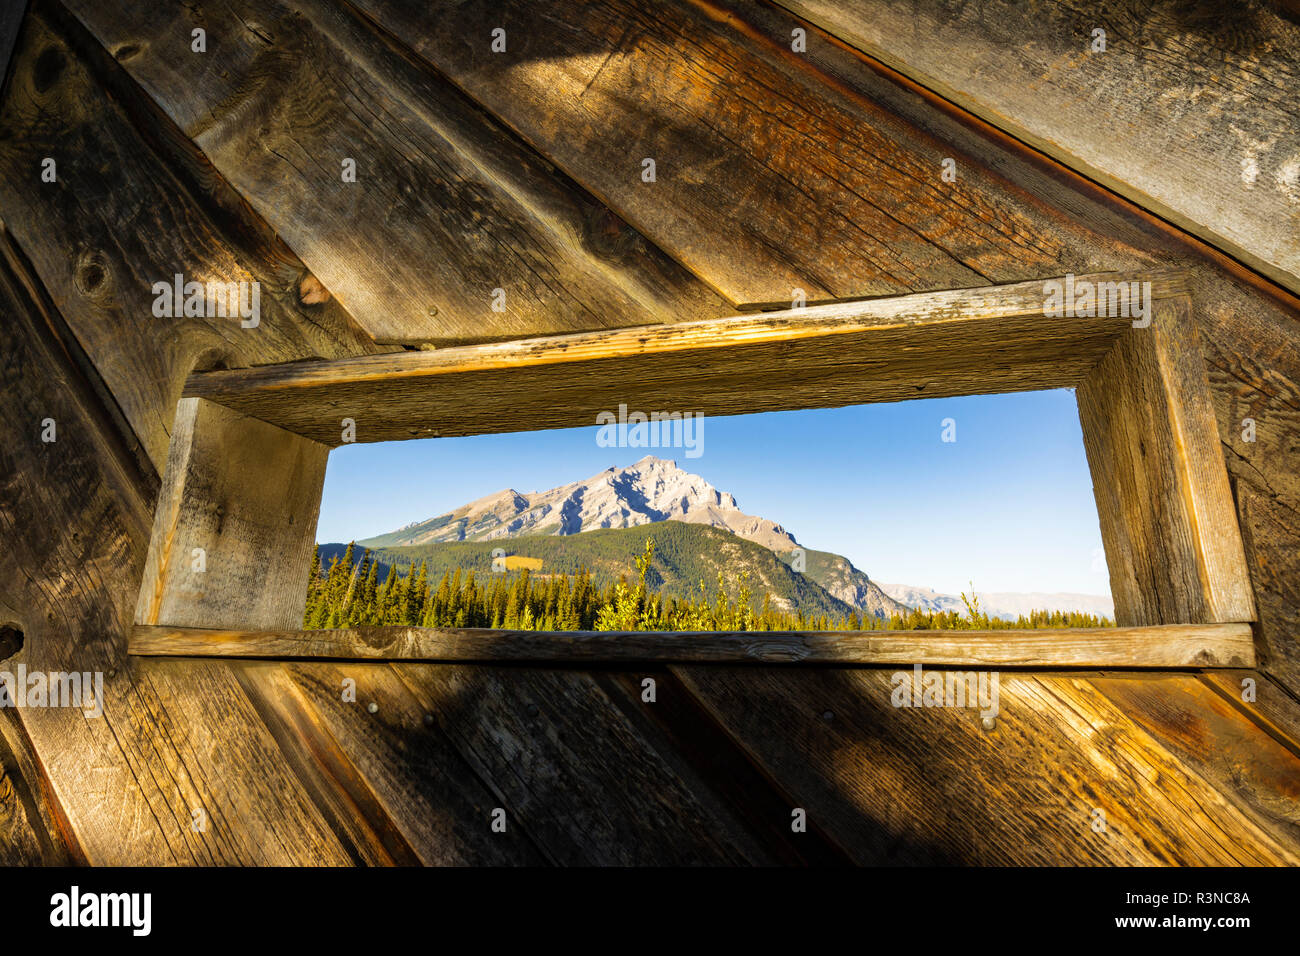 Wildlife viewing blind at Cave and Basin National Historic Site, Banff National Park, Alberta, Canada - Stock Image